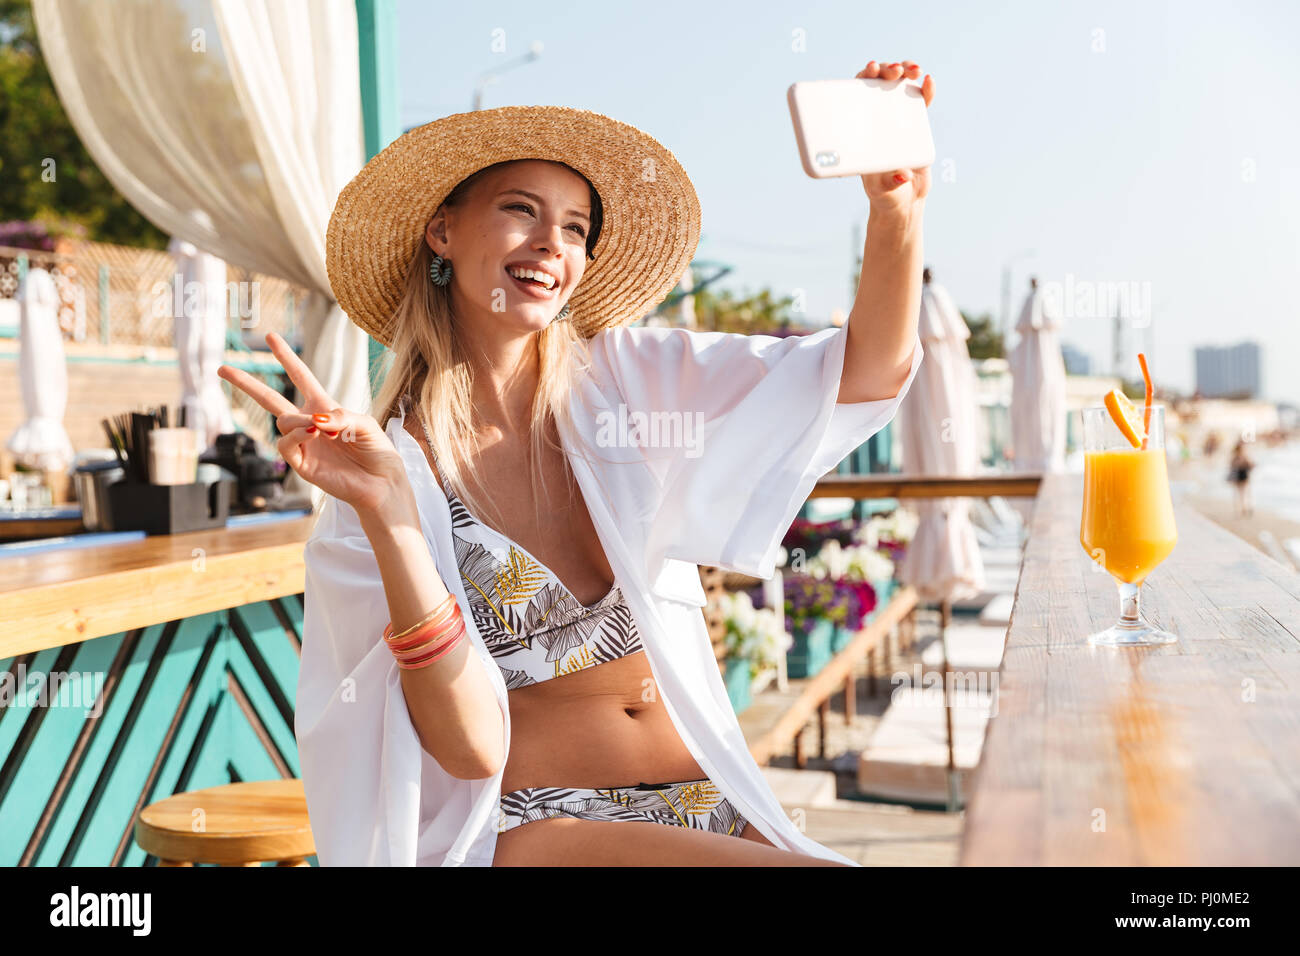 Photo of beautiful young woman 20s in straw hat and swimwear taking selfie on smartphone while drinking orange juice in beach bar during vacation Stock Photo